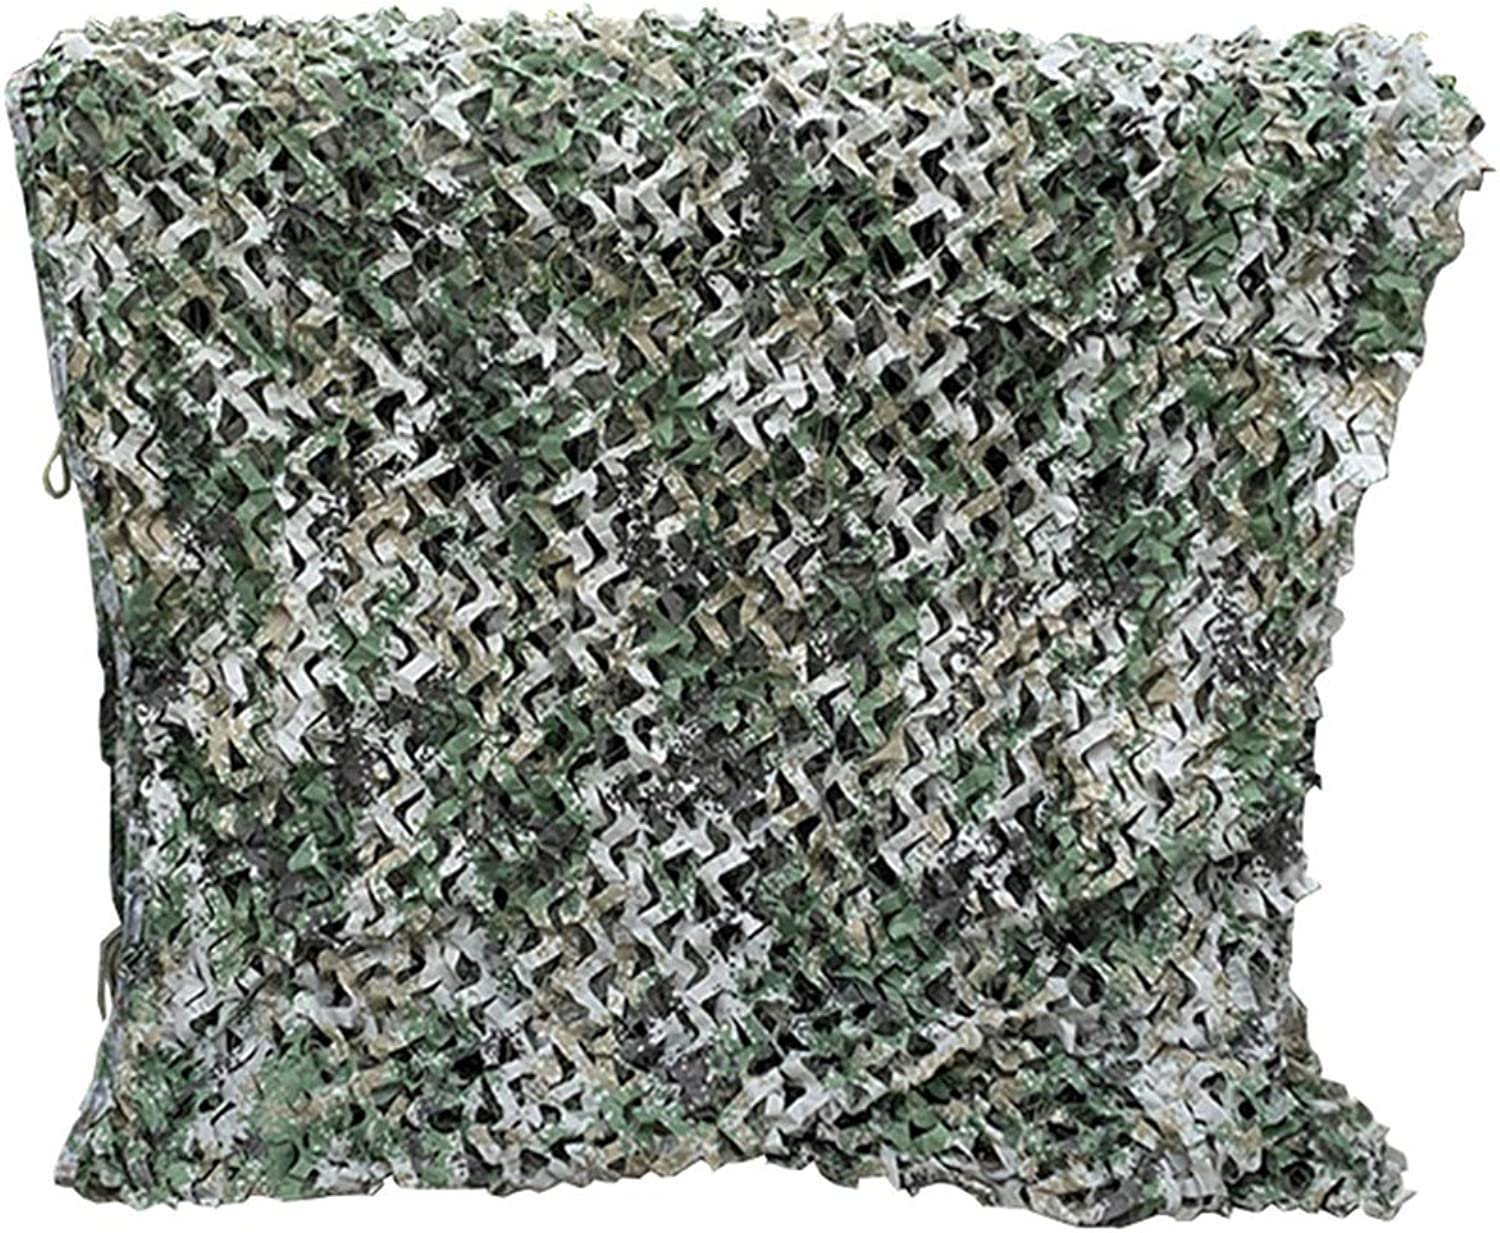 Camouflage Netting - Camping Desert Shooting Hunting Military Theme Party Decoration UV Resistant Shade Camo Netting Oxford Polyester Army Mesh Nets